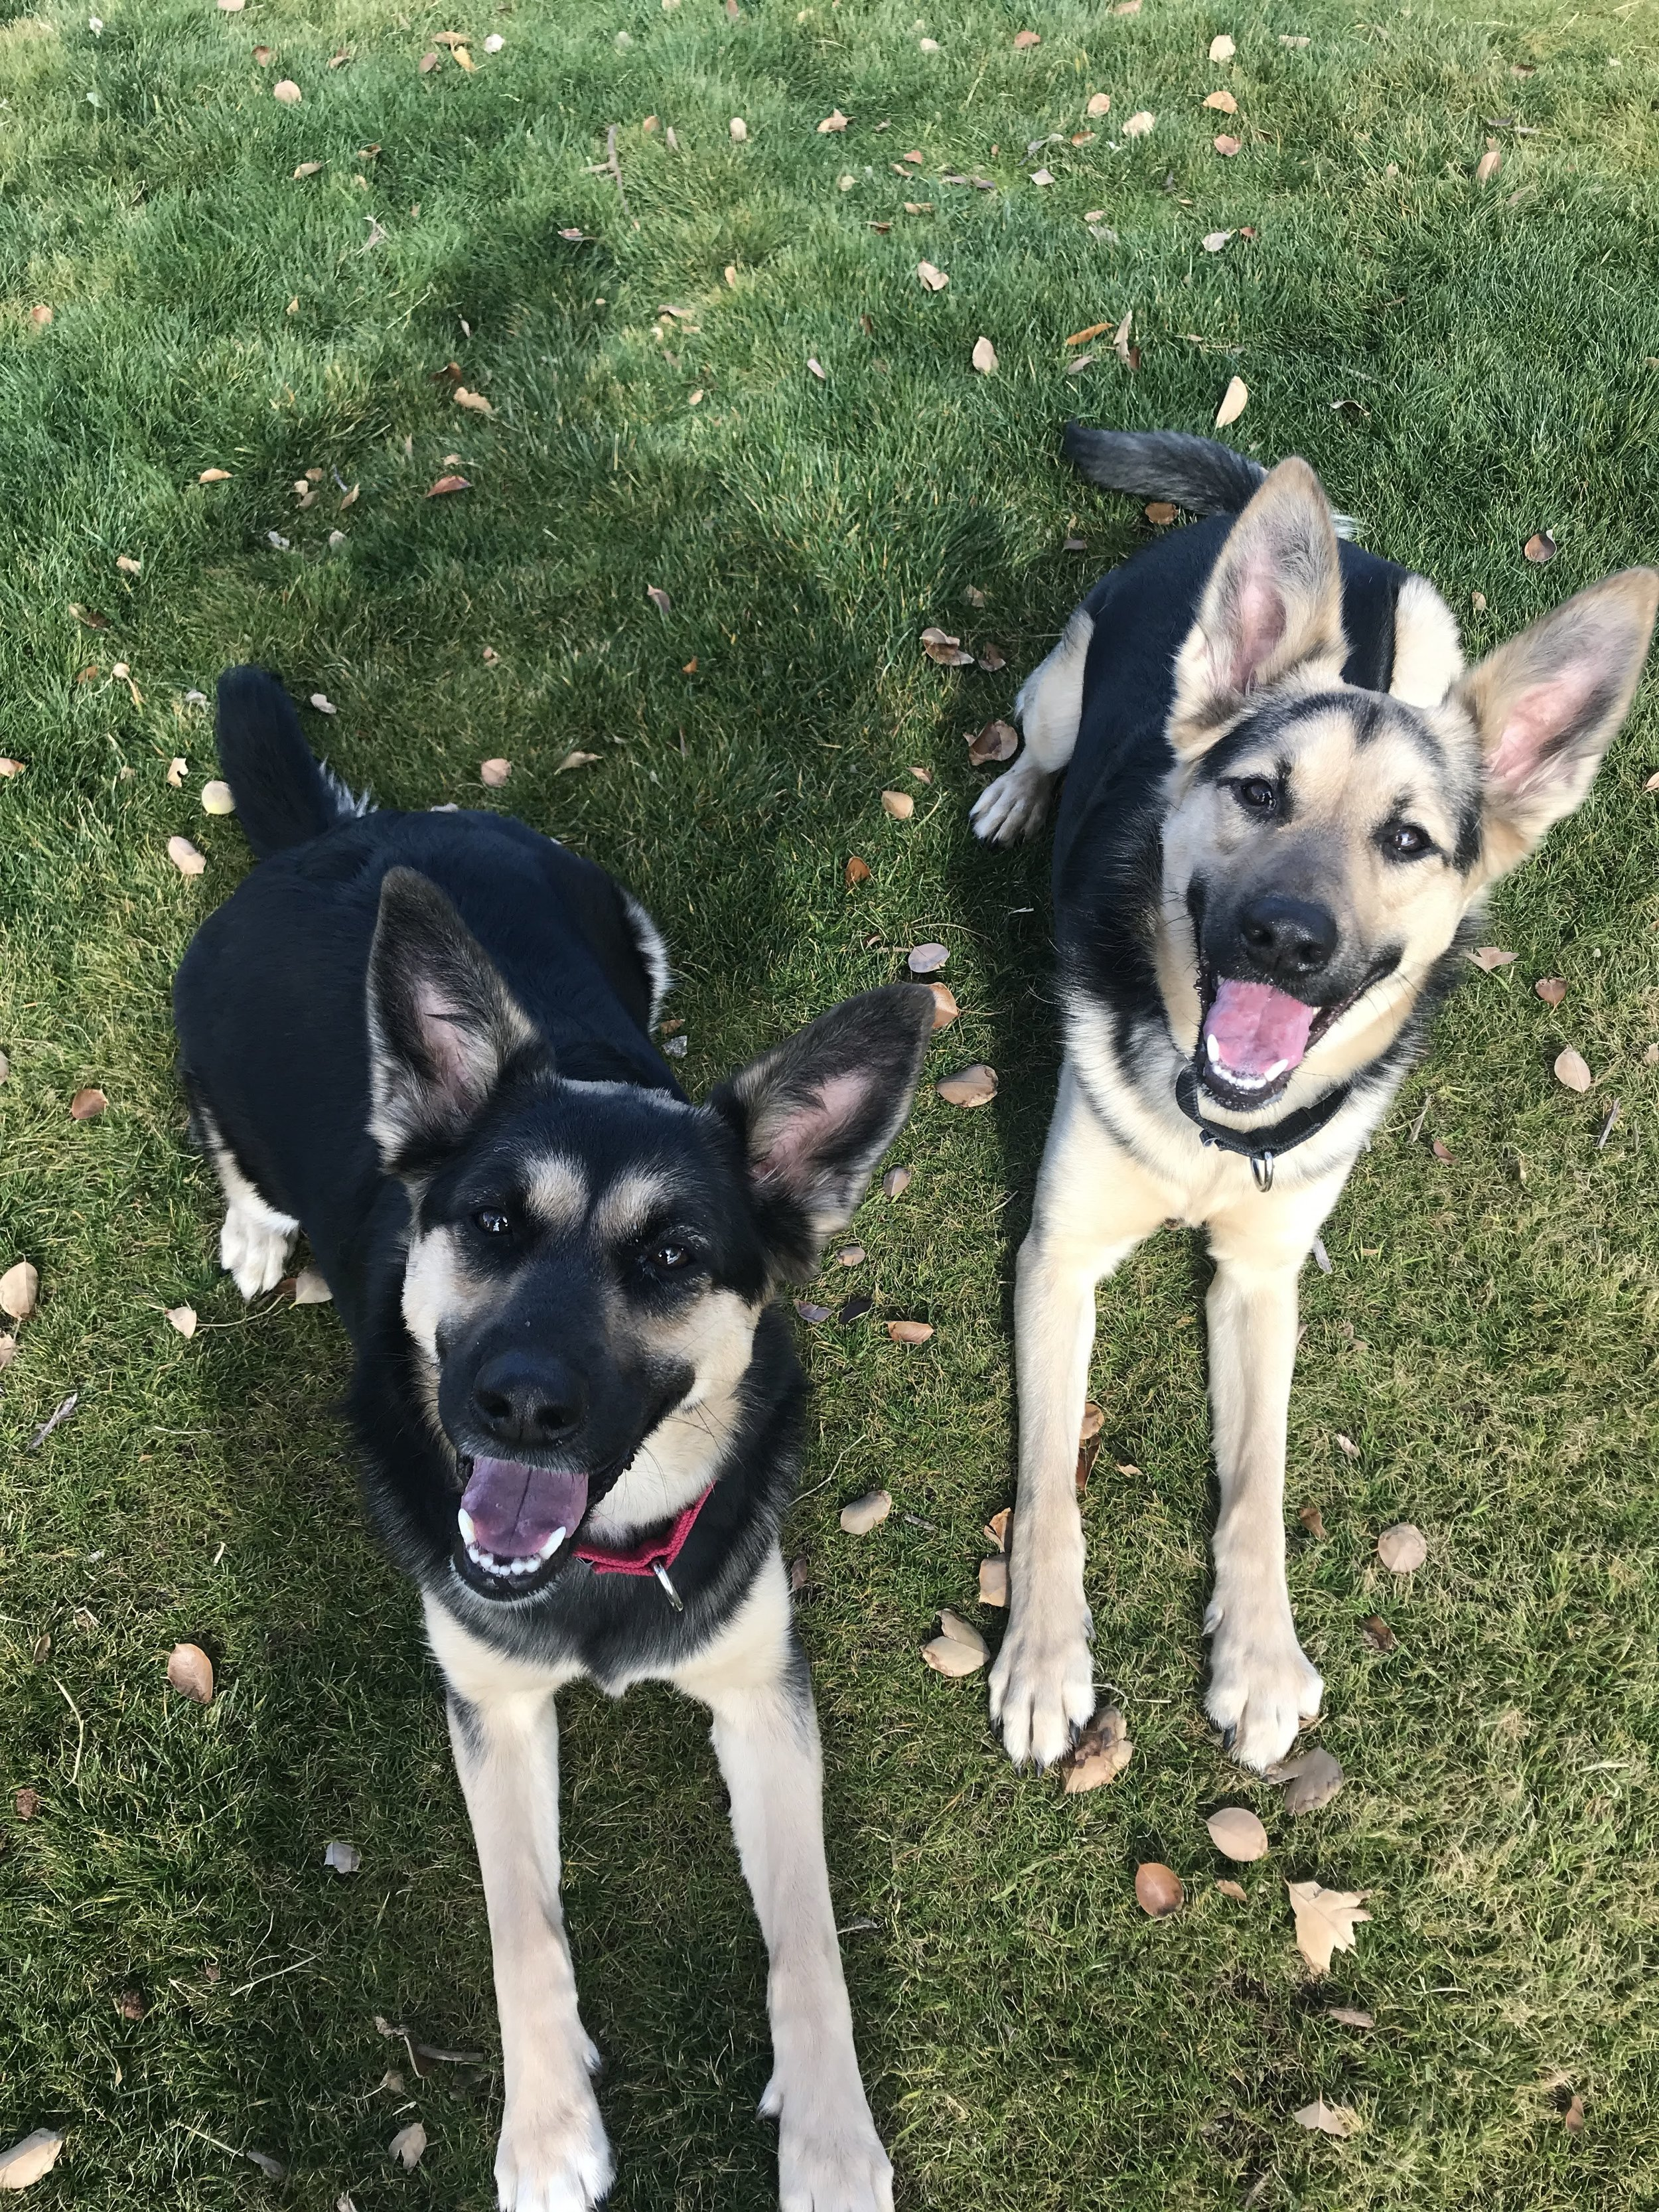 Panzer and Zelda were enrolled in our board and train program to learn obedience and proper manners. They wanted to learn how to be on their best behavior prior to the arrival of a beautiful baby girl!